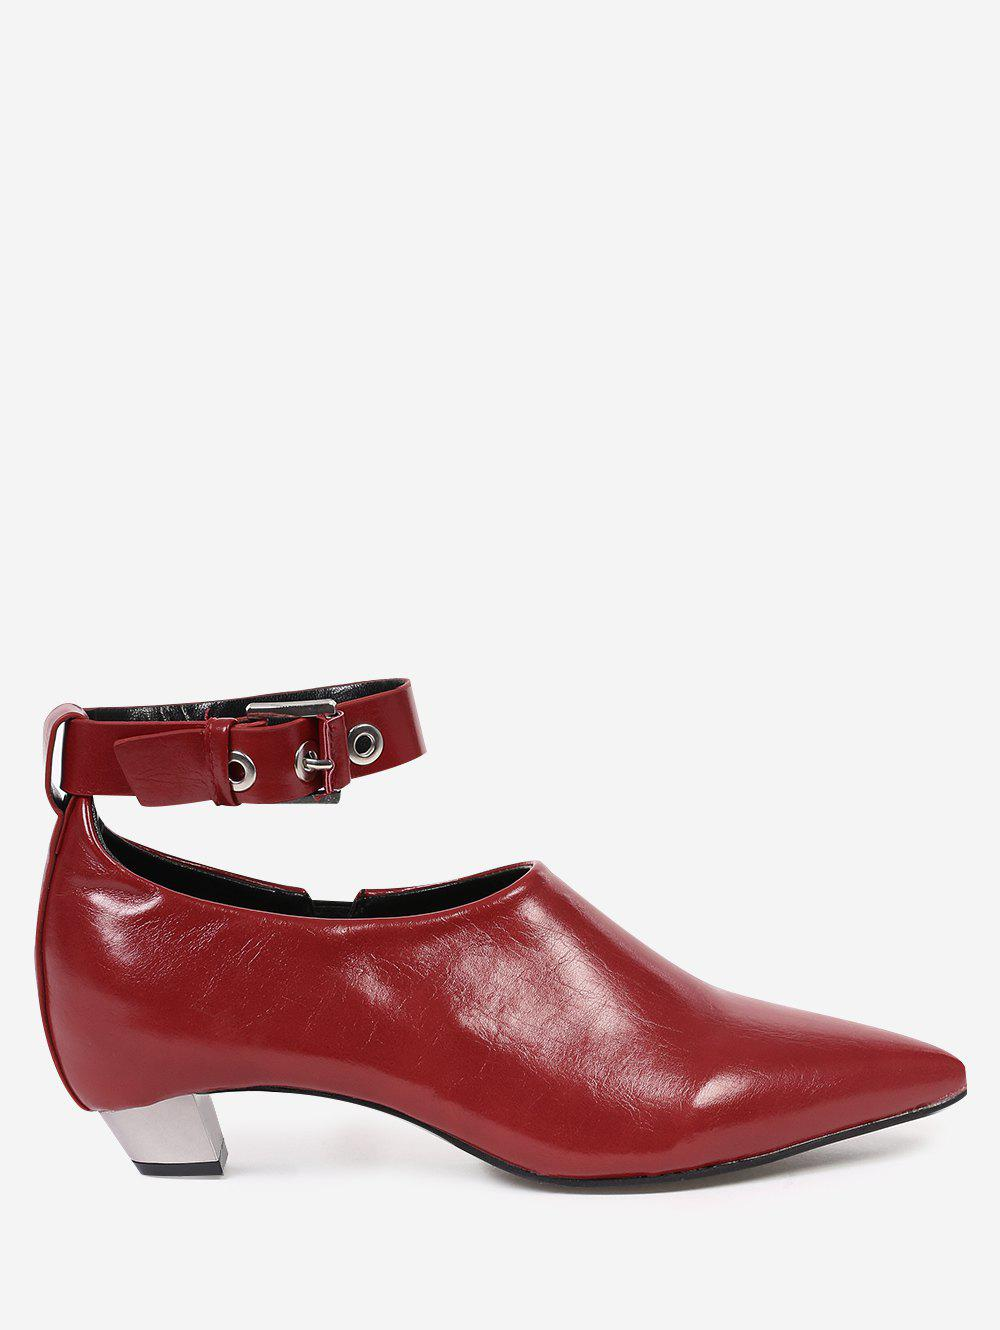 Chaussures plates avec oeillet pointu Toe Ankle Strap - Rouge 38